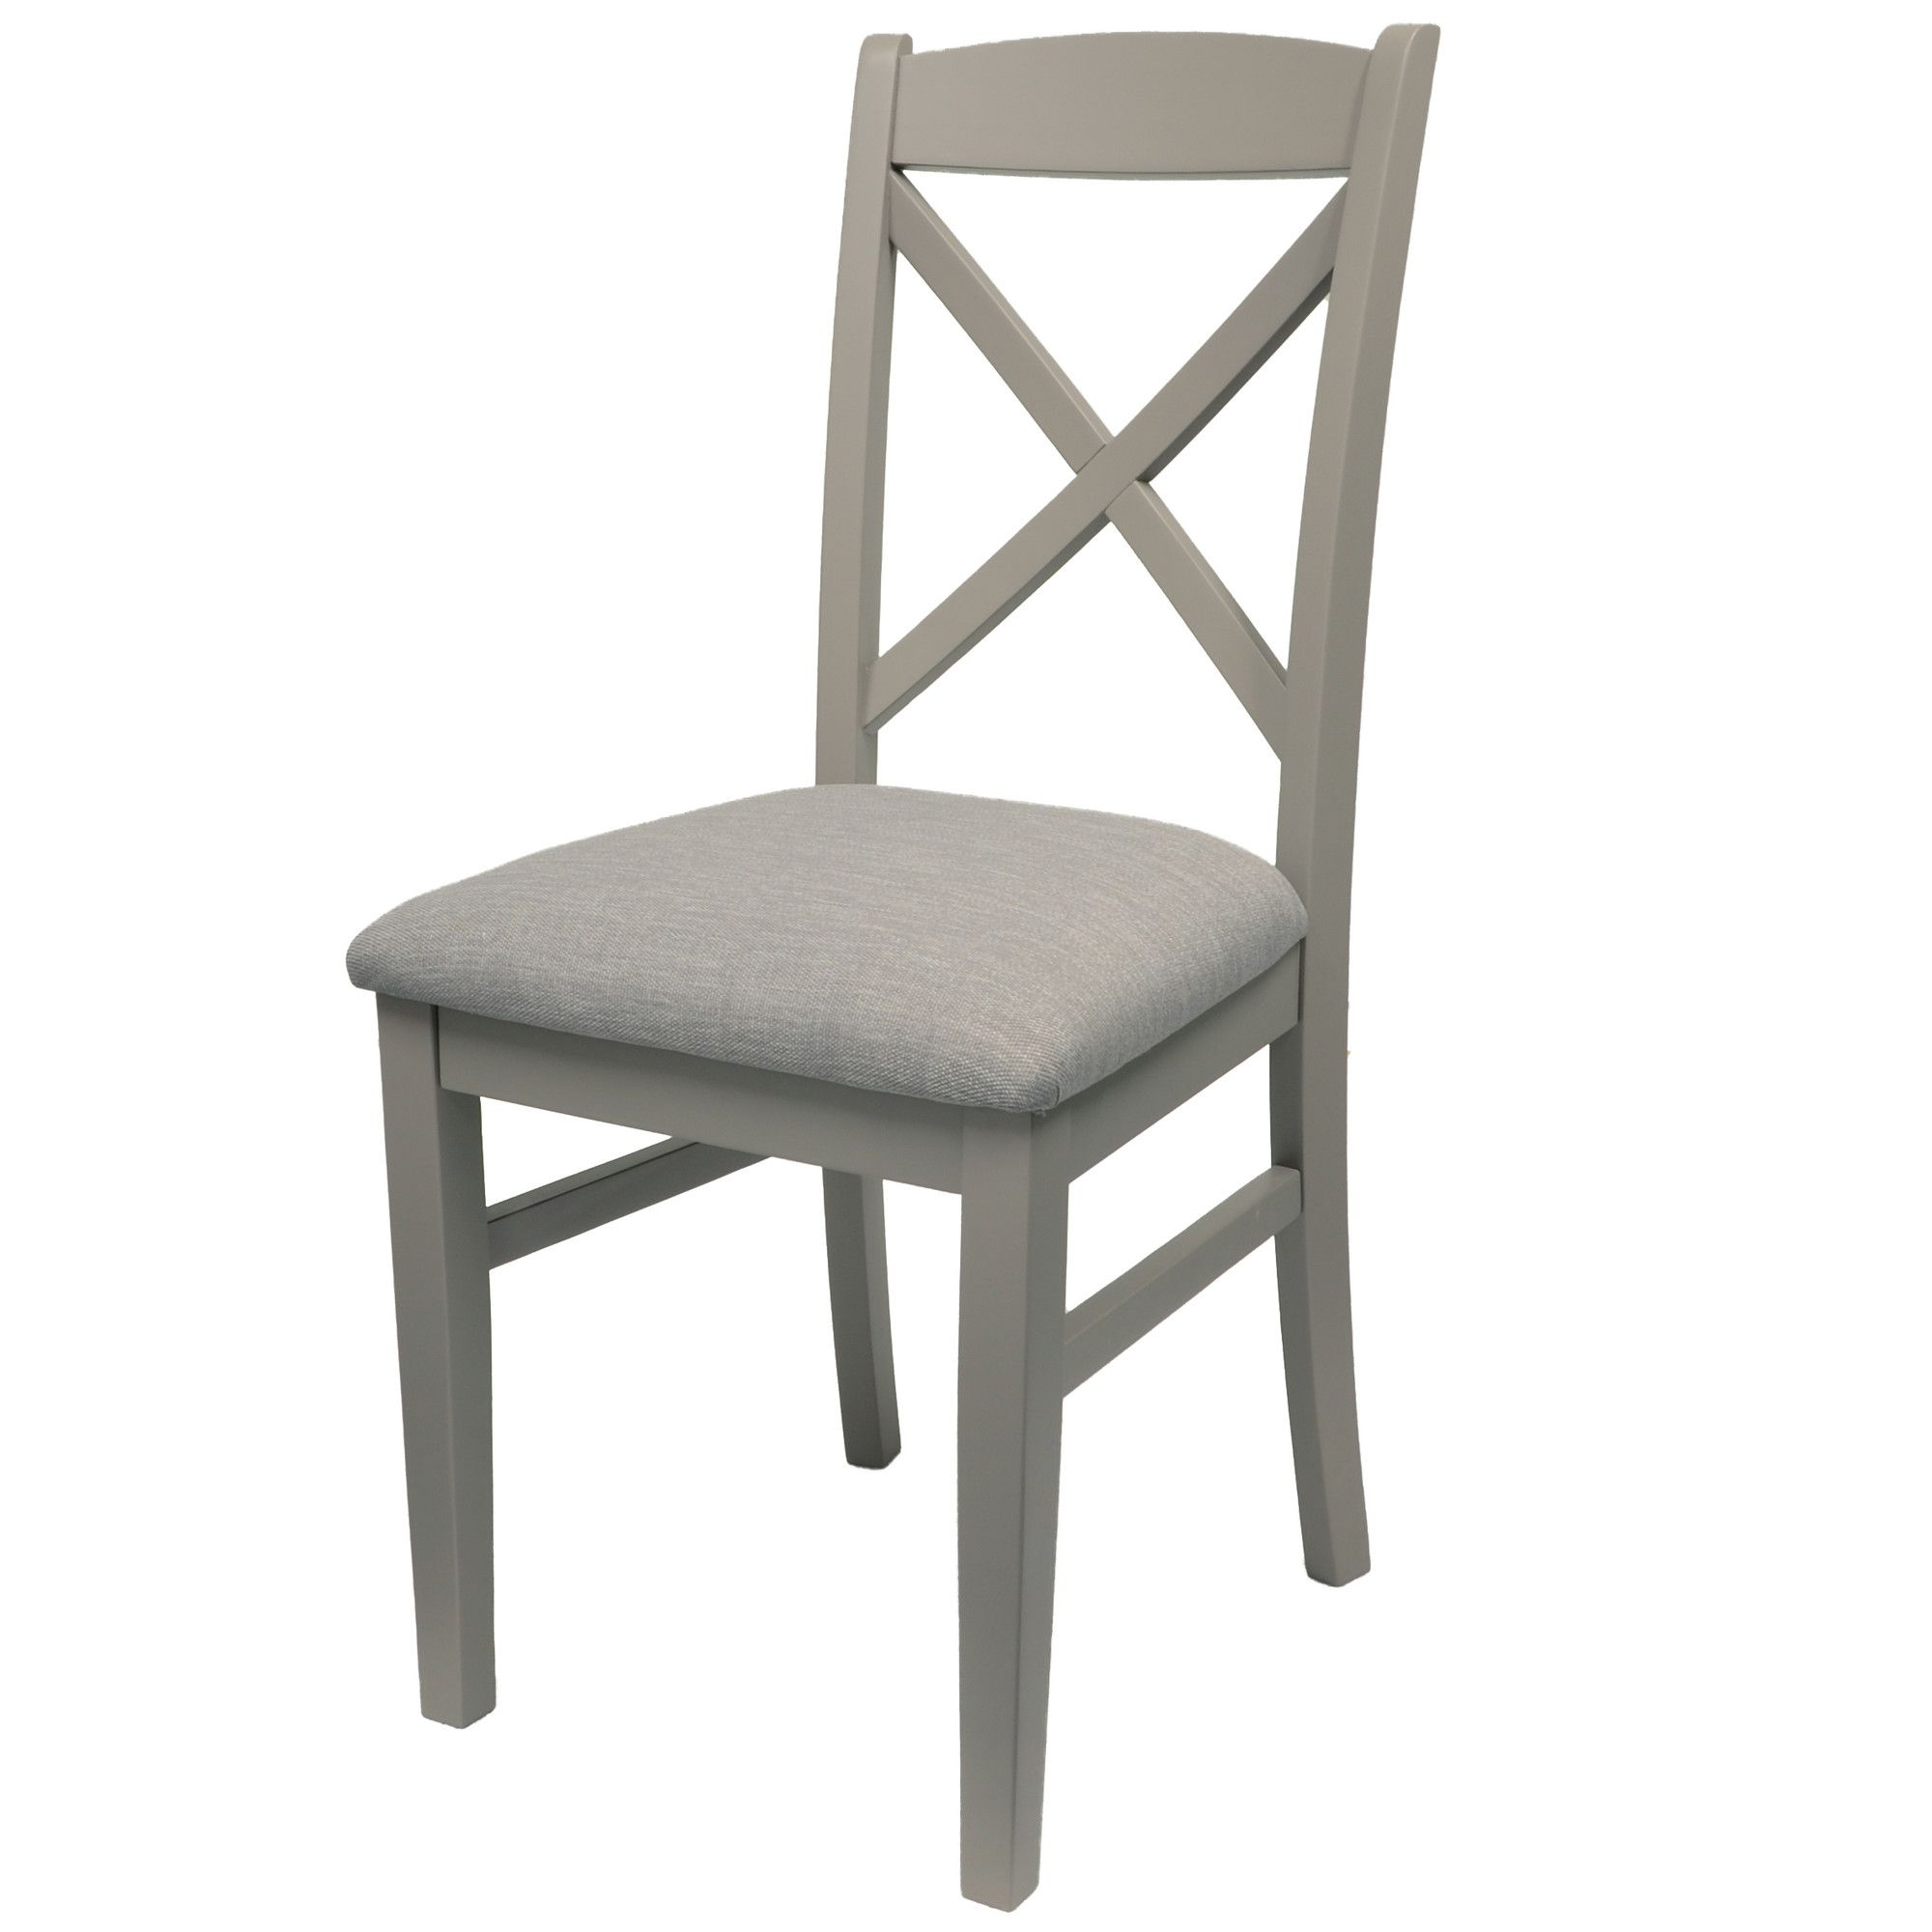 Chairs   Hazelwood Home. Francesca Dining Chair   Home  Dining chairs and Chairs